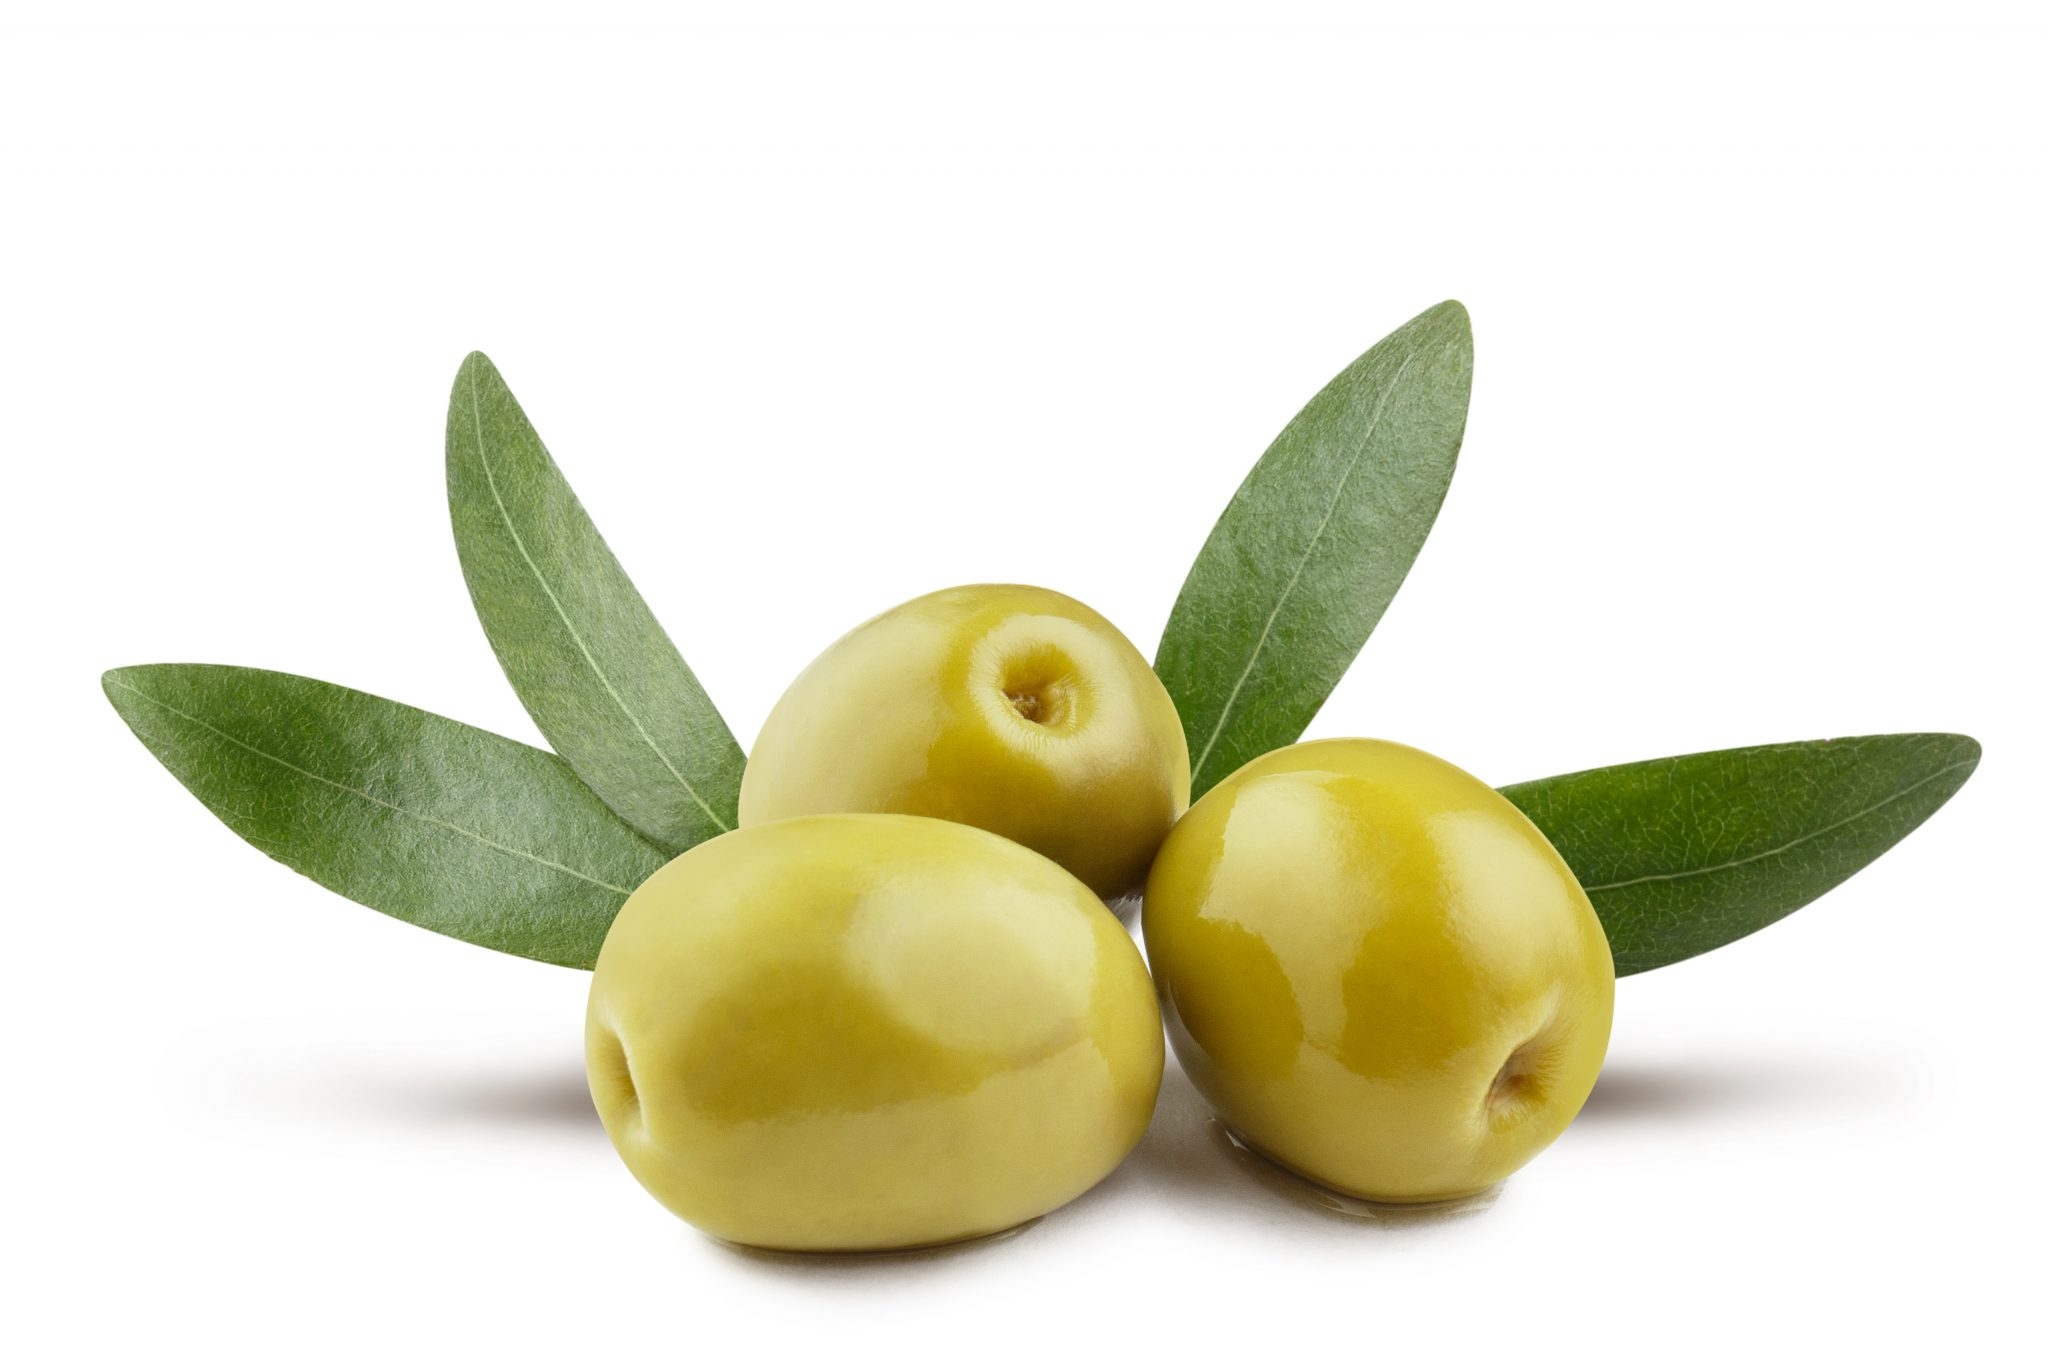 Are table olives good for you?